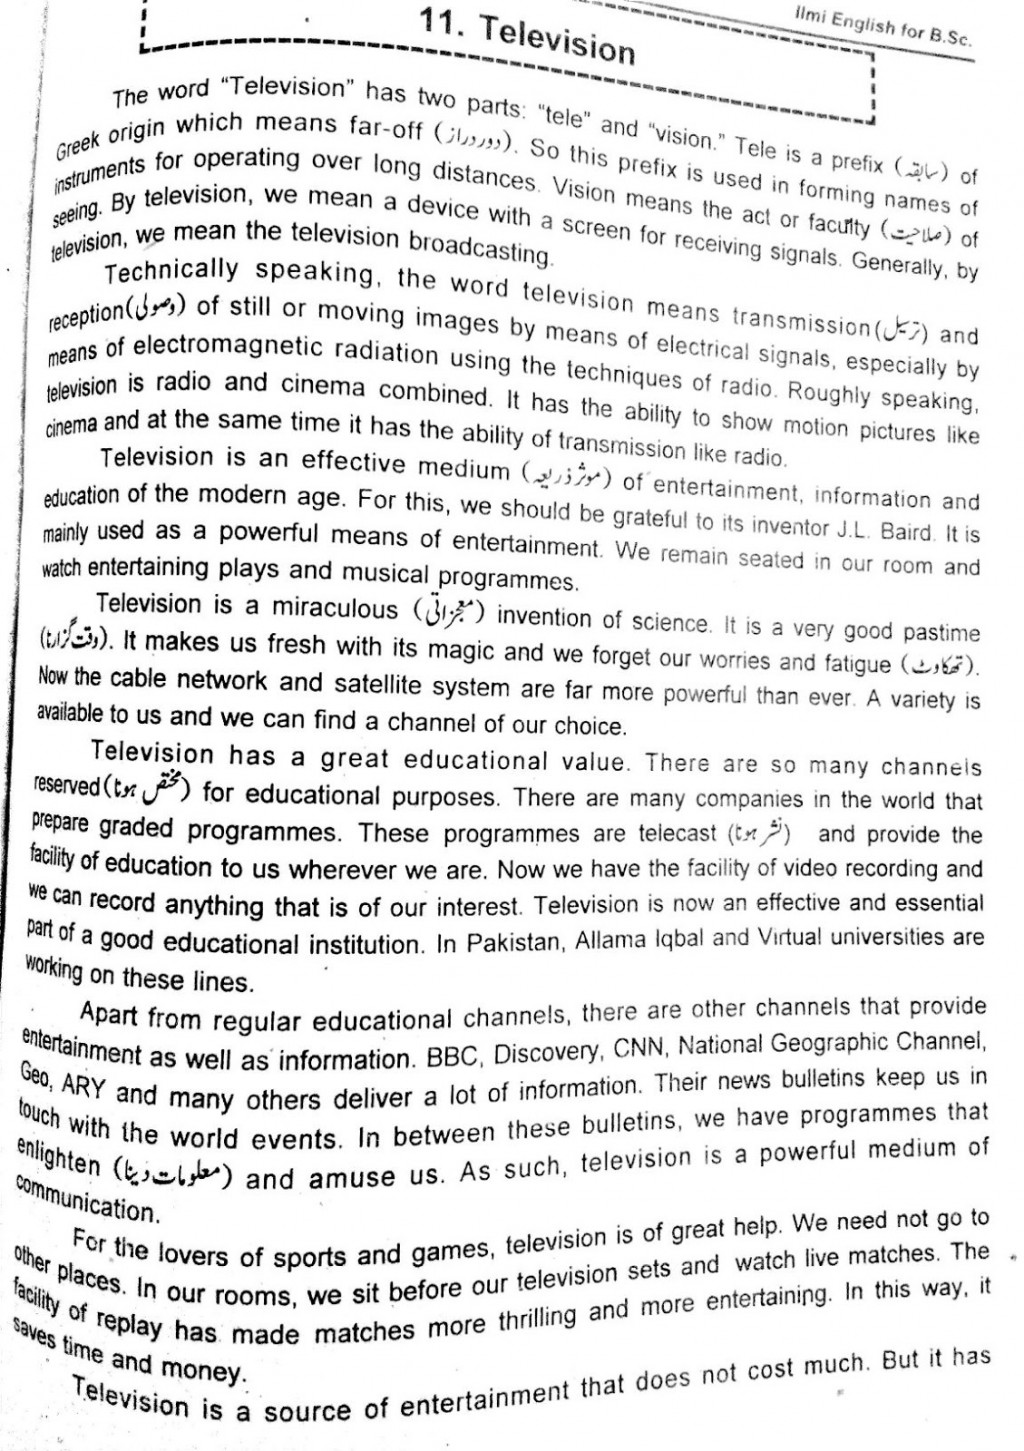 011 Television2b252812529 Essay Example My Favourite Newspaper In Striking English Large